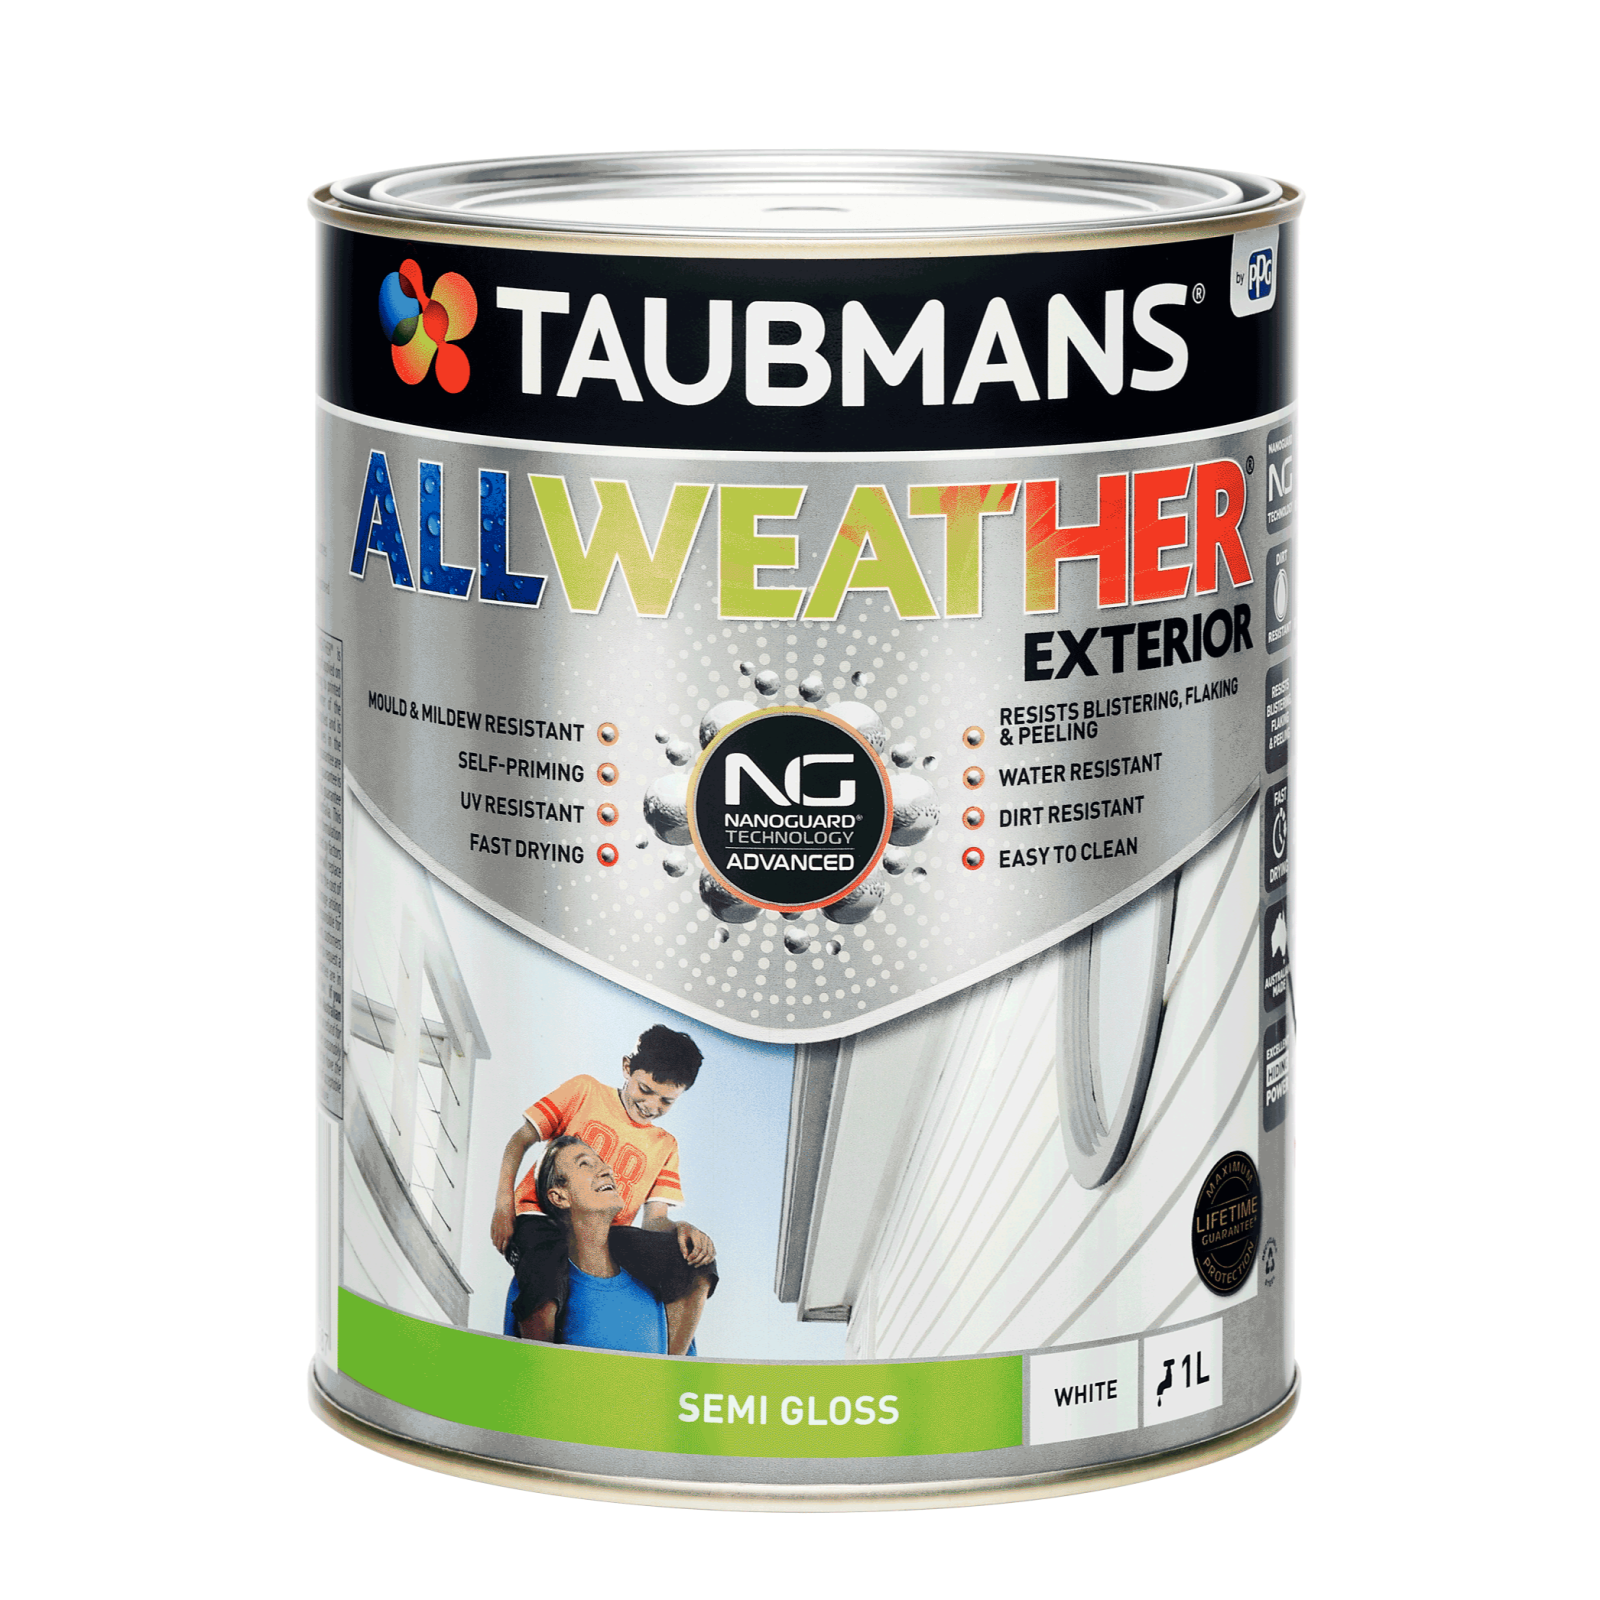 Taubmans 1L White Semi Gloss All Weather Exterior Paint